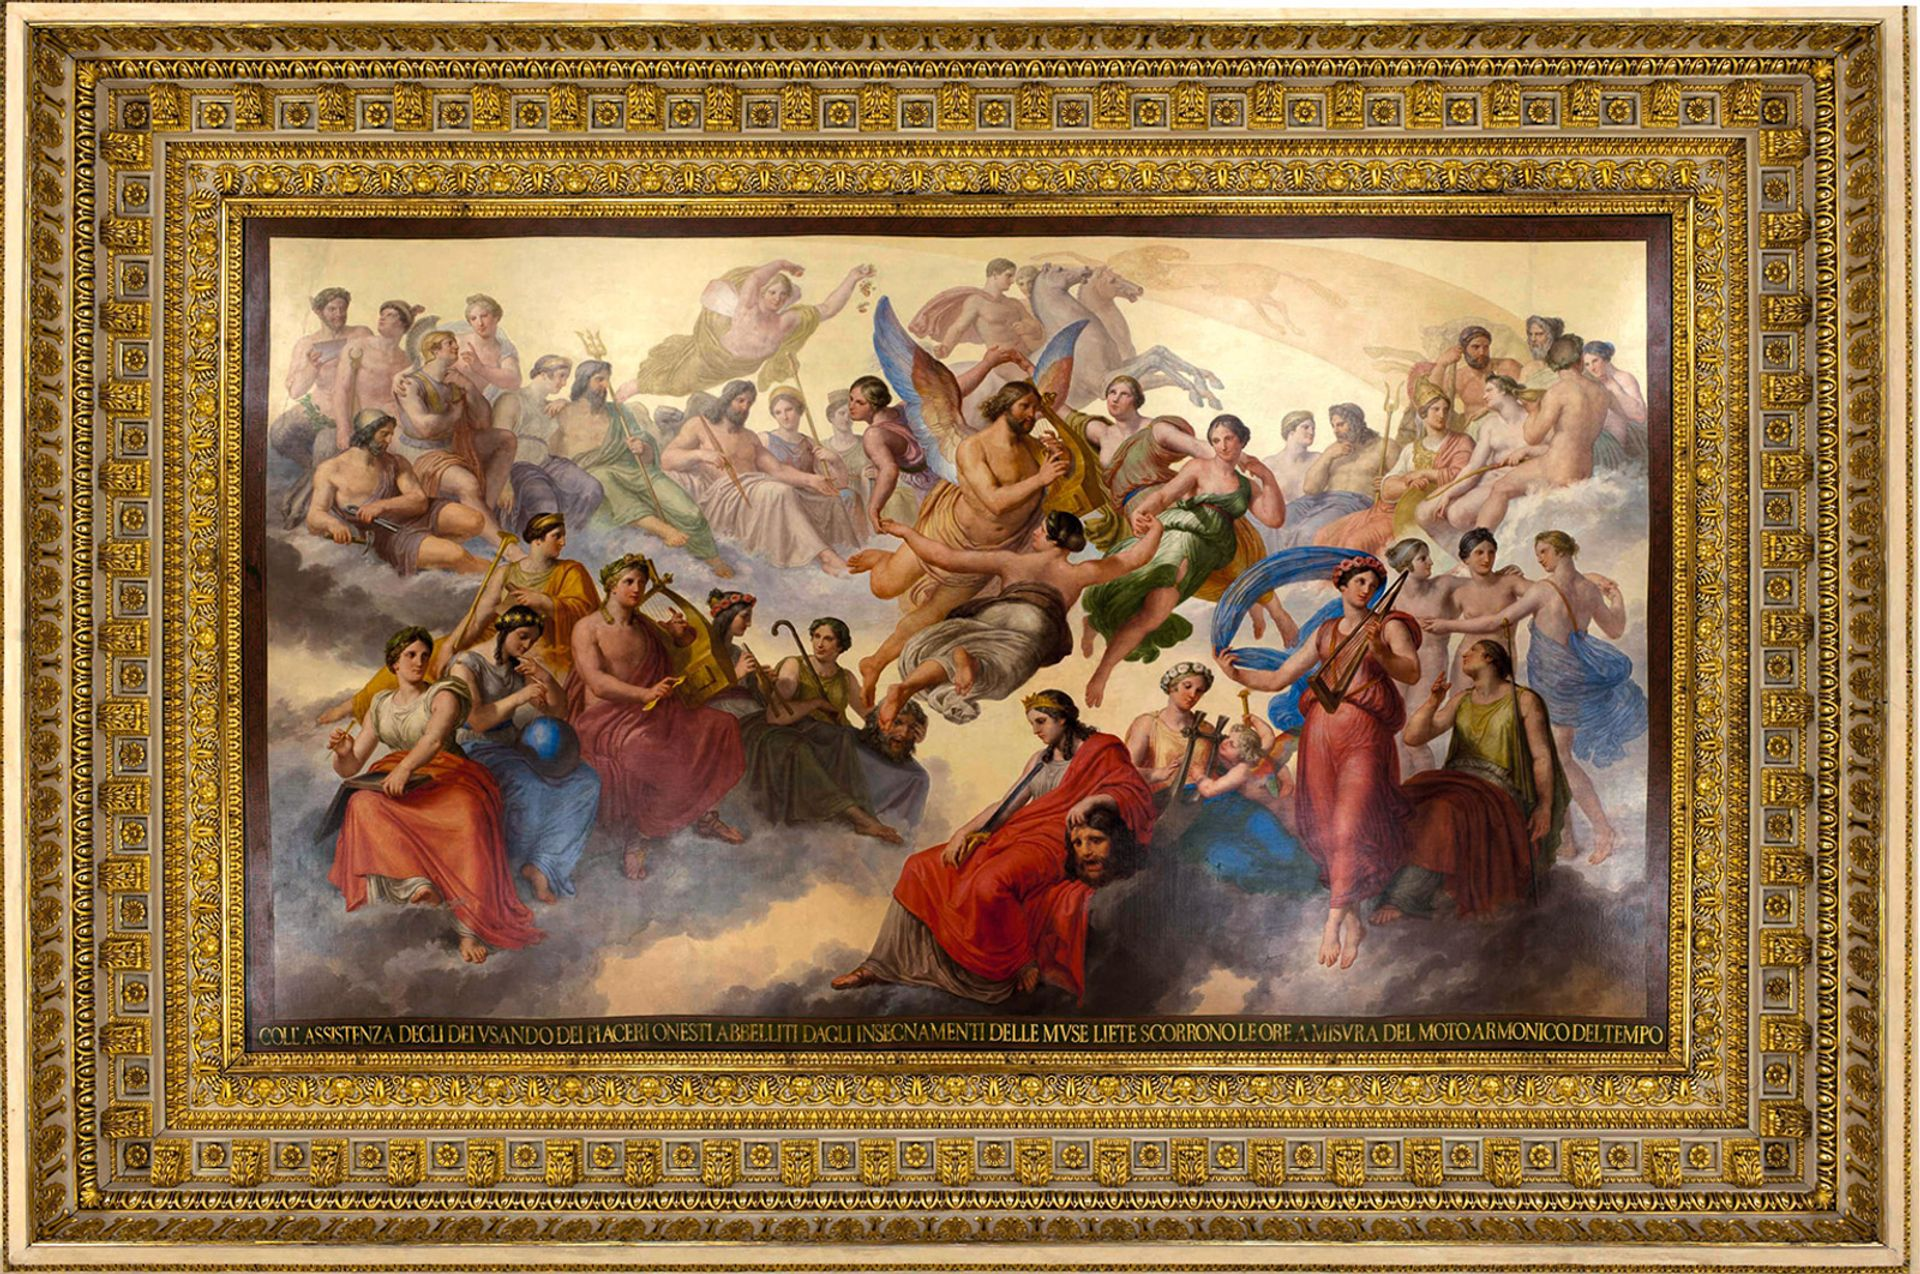 Detail from The Dance of the Hours (1839-58)on the ceiling of the ballroom in the Palazzo Reale, Turin © Palazzo Reale, Turin